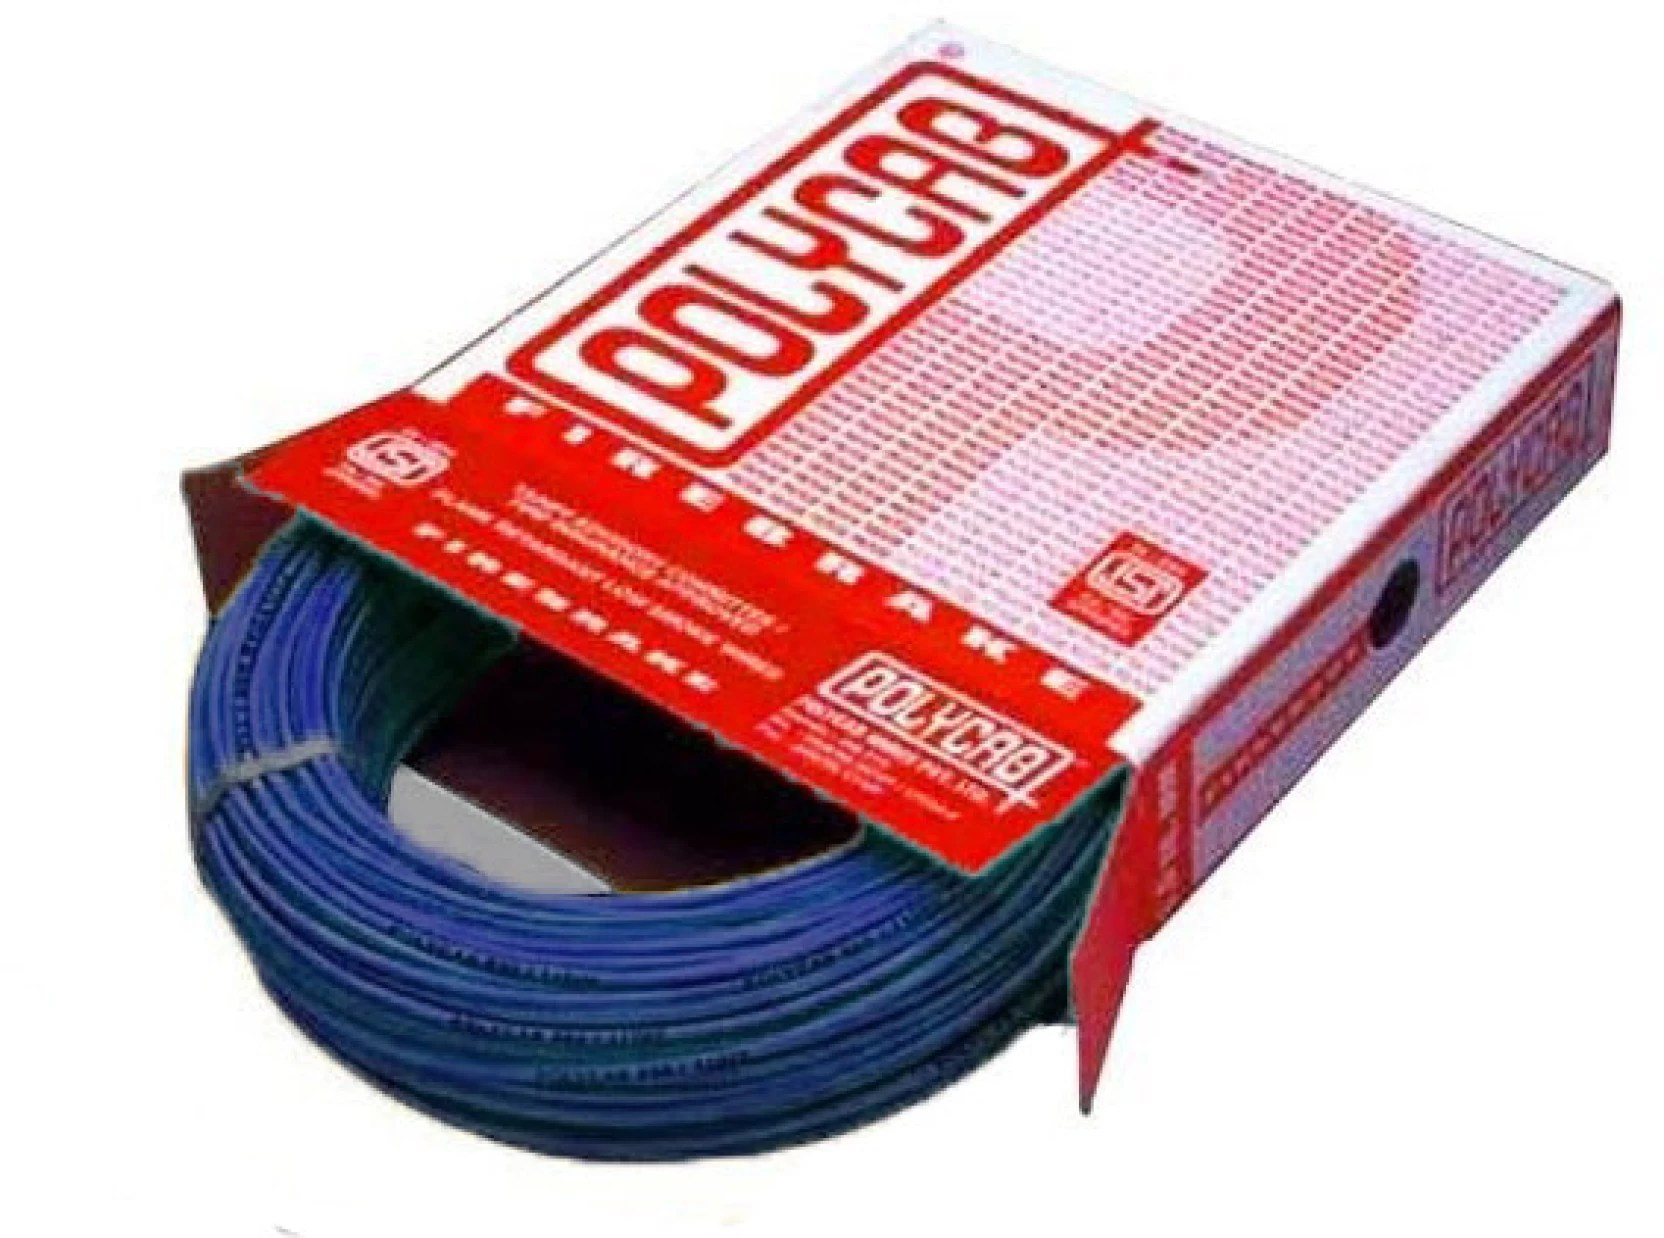 House Wiring Cable Price List